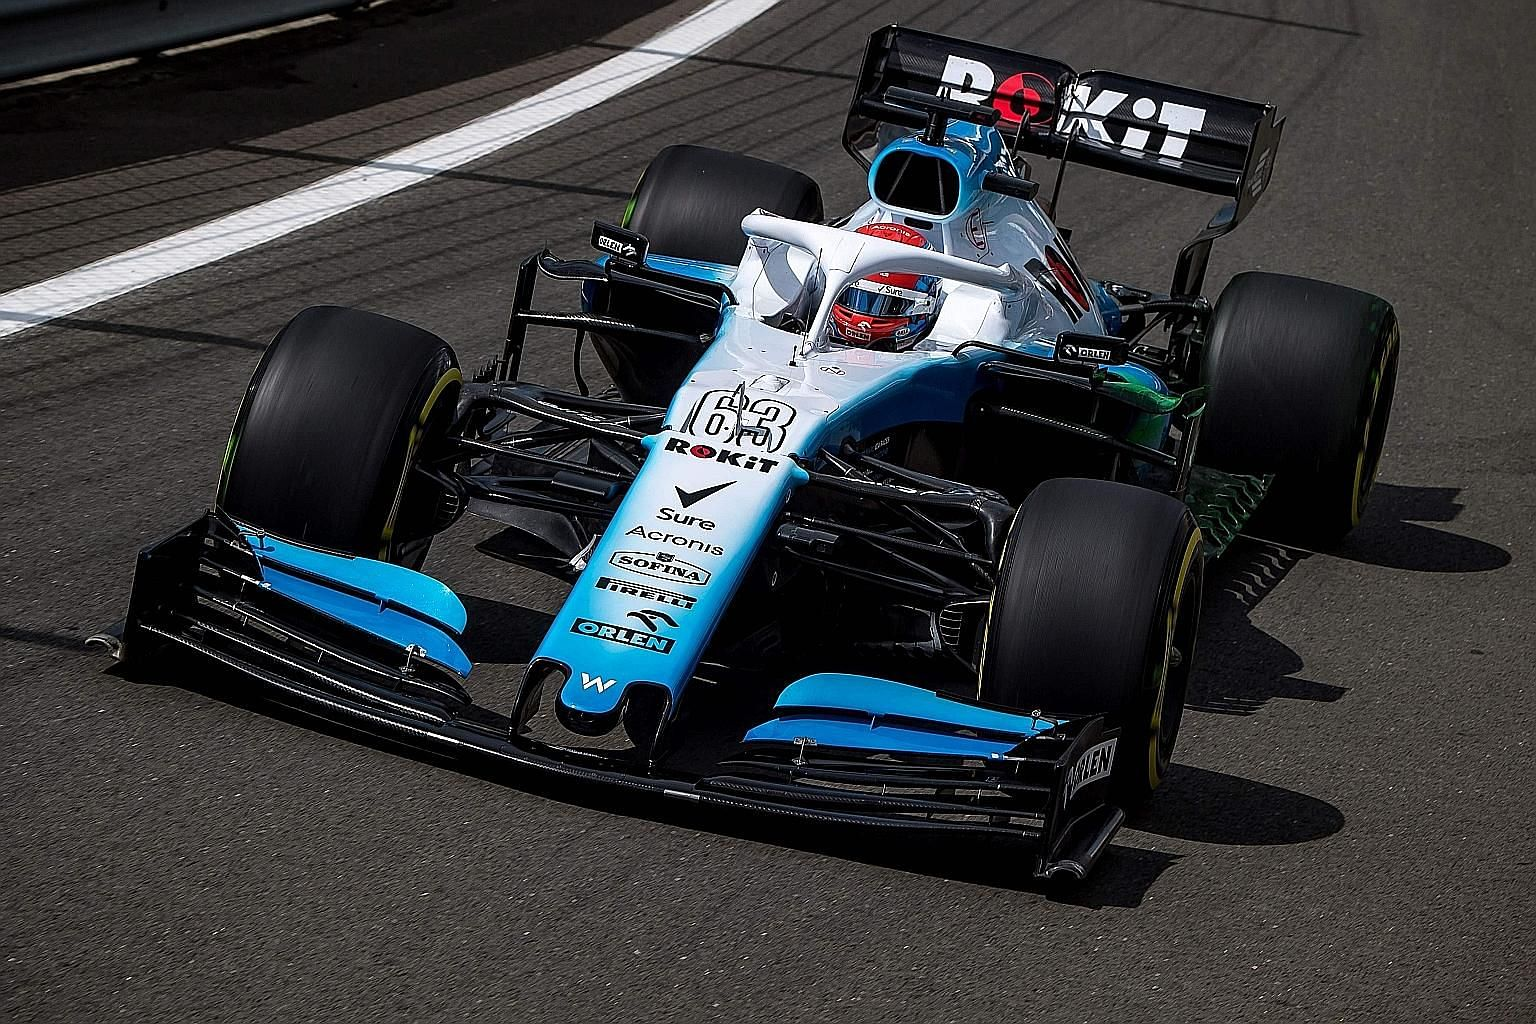 Williams' George Russell driving during last year's British Grand Prix at Silverstone. He failed to earn a point as the team finished bottom of the 10 F1 teams last season.